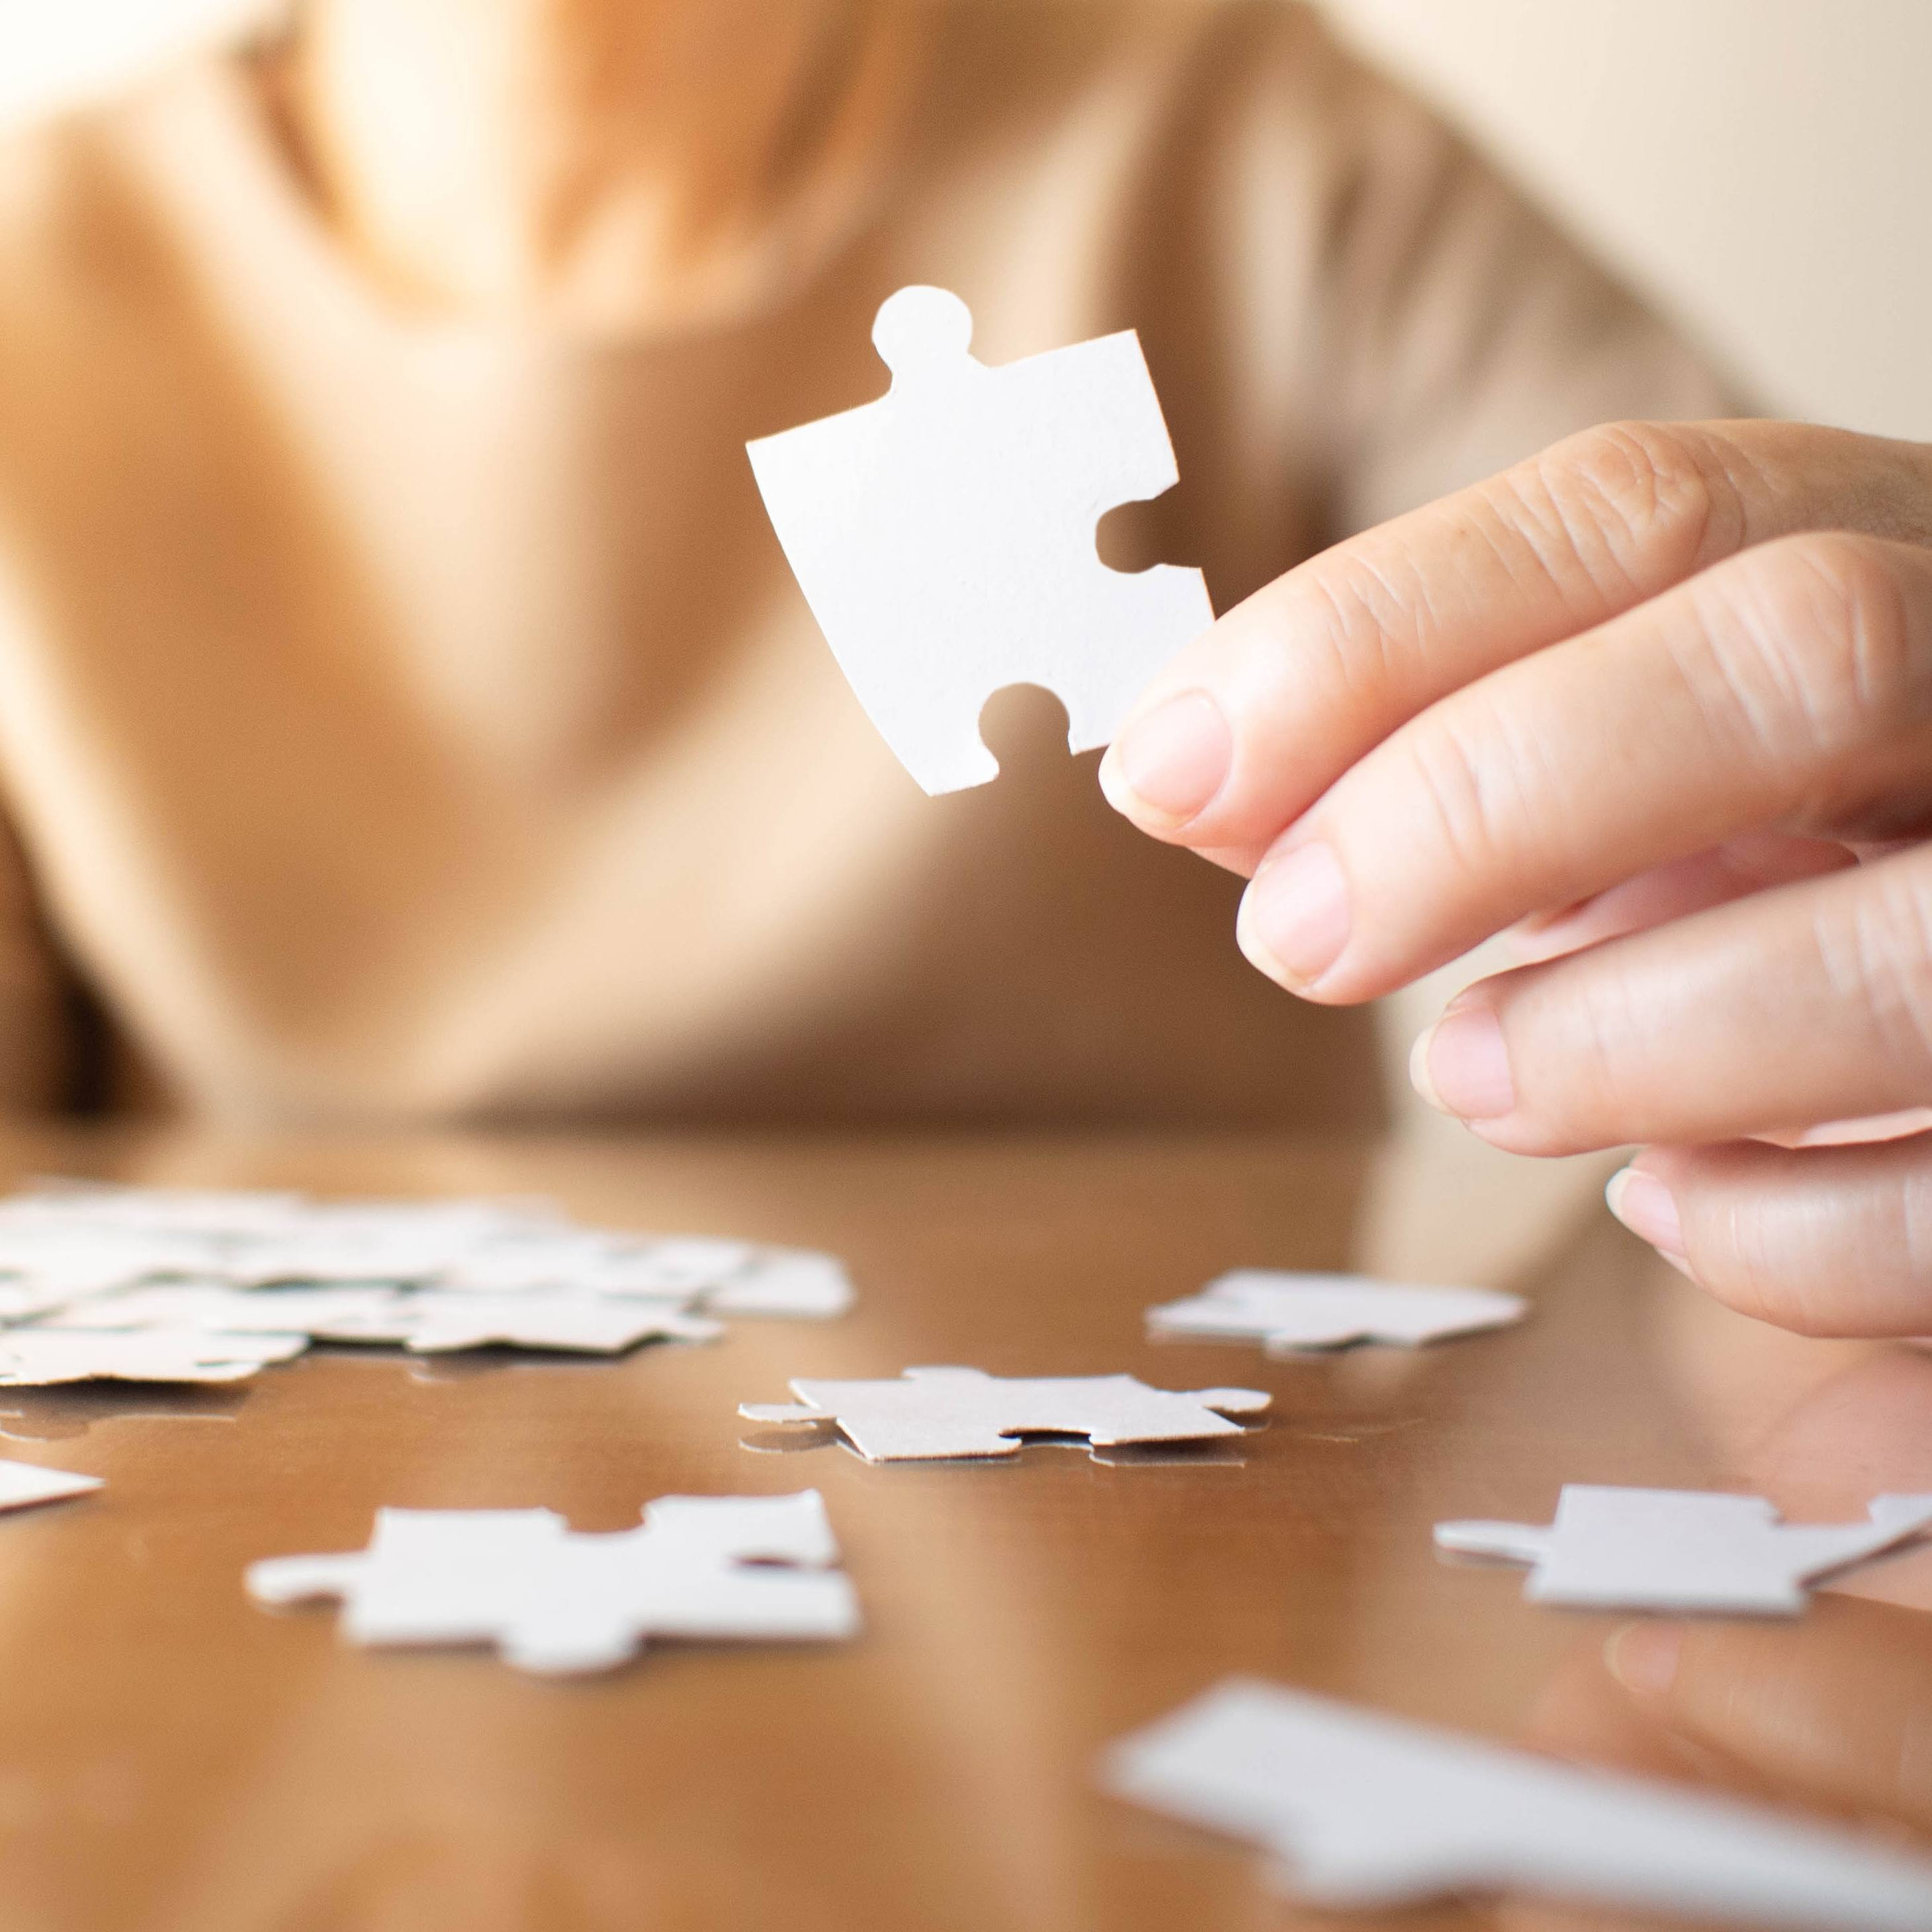 Elderly female hand trying to connect pieces of white jigsaw puzzle on wooden table.